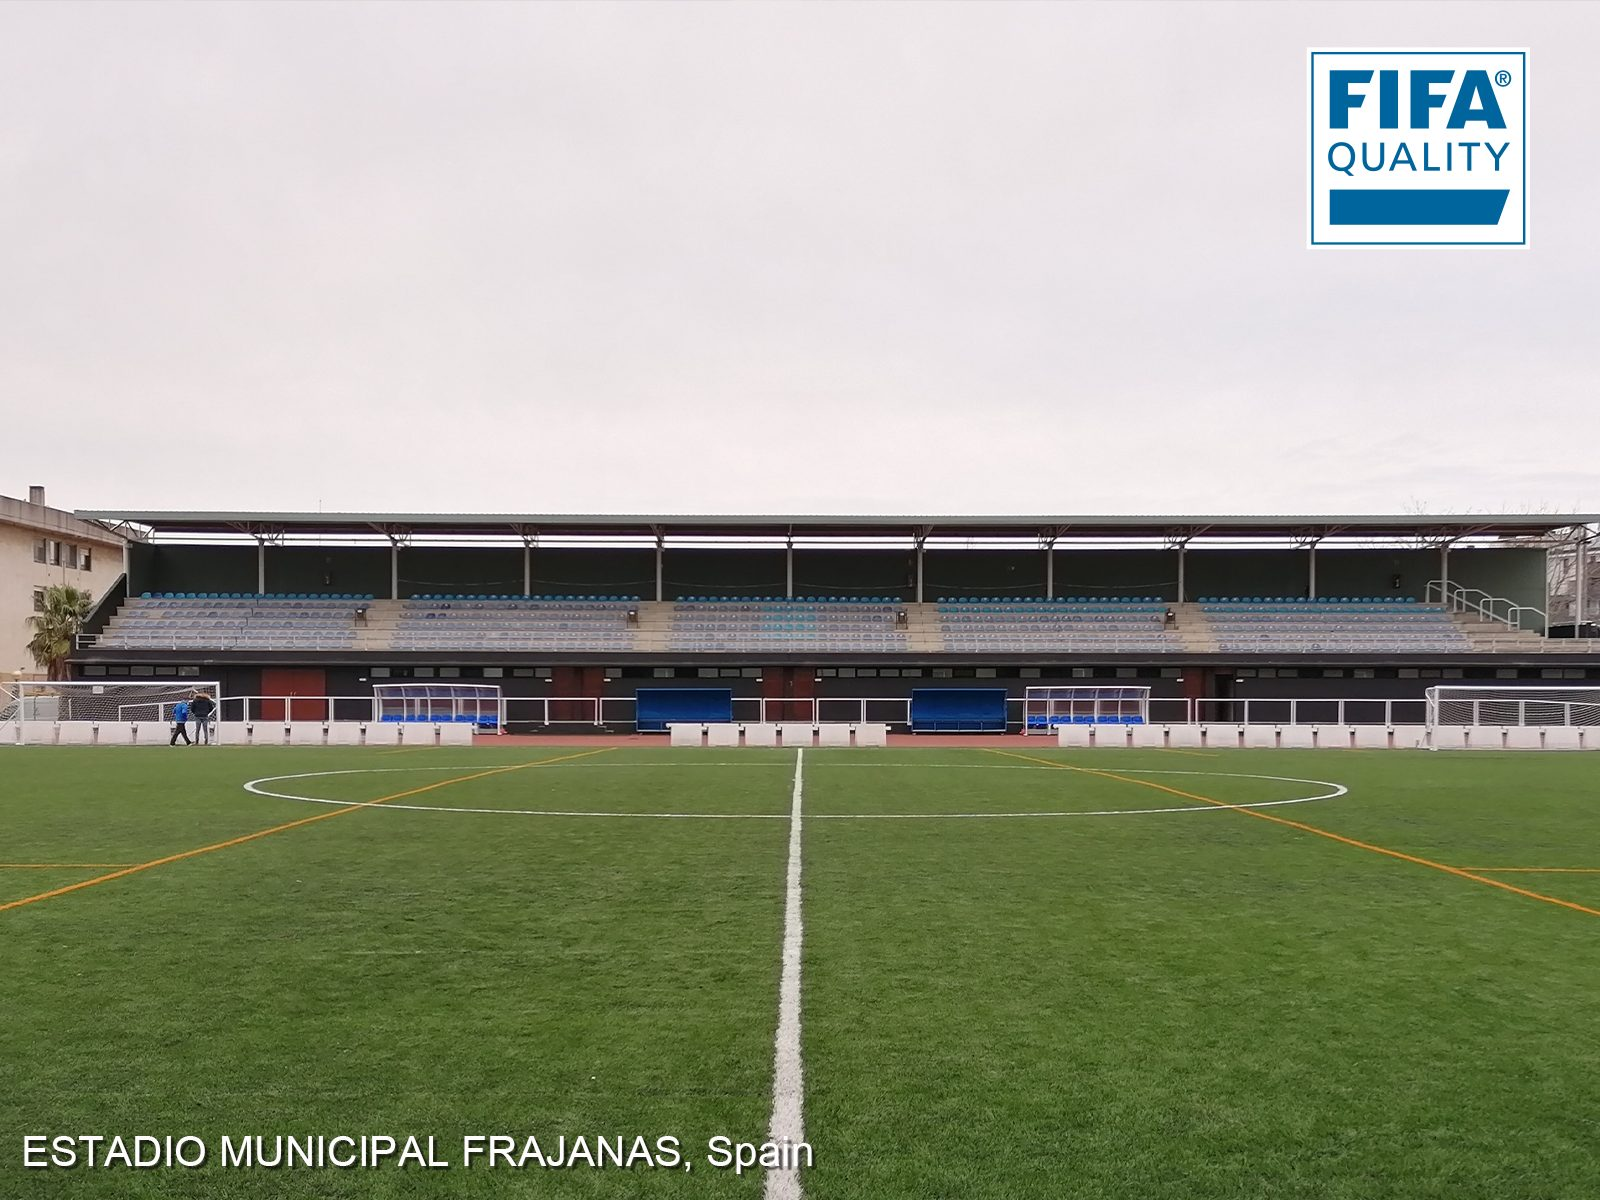 ESTADIO MUNICIPAL FRAJANAS, Spain(1)